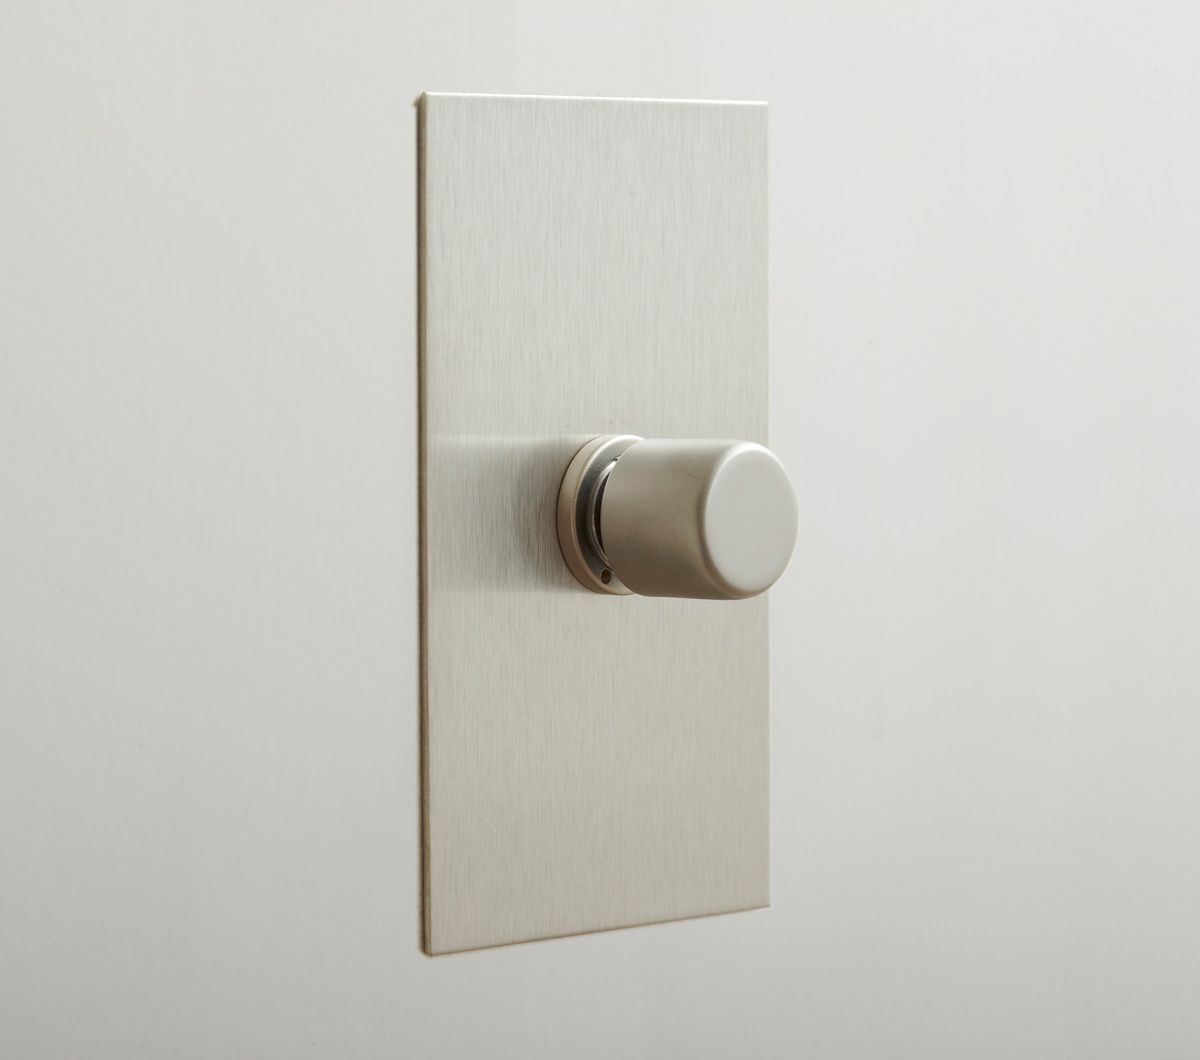 Forbes And Lomax The Invisible Lightswitch With Images Light Switches And Sockets Light Switch Designer Light Switches